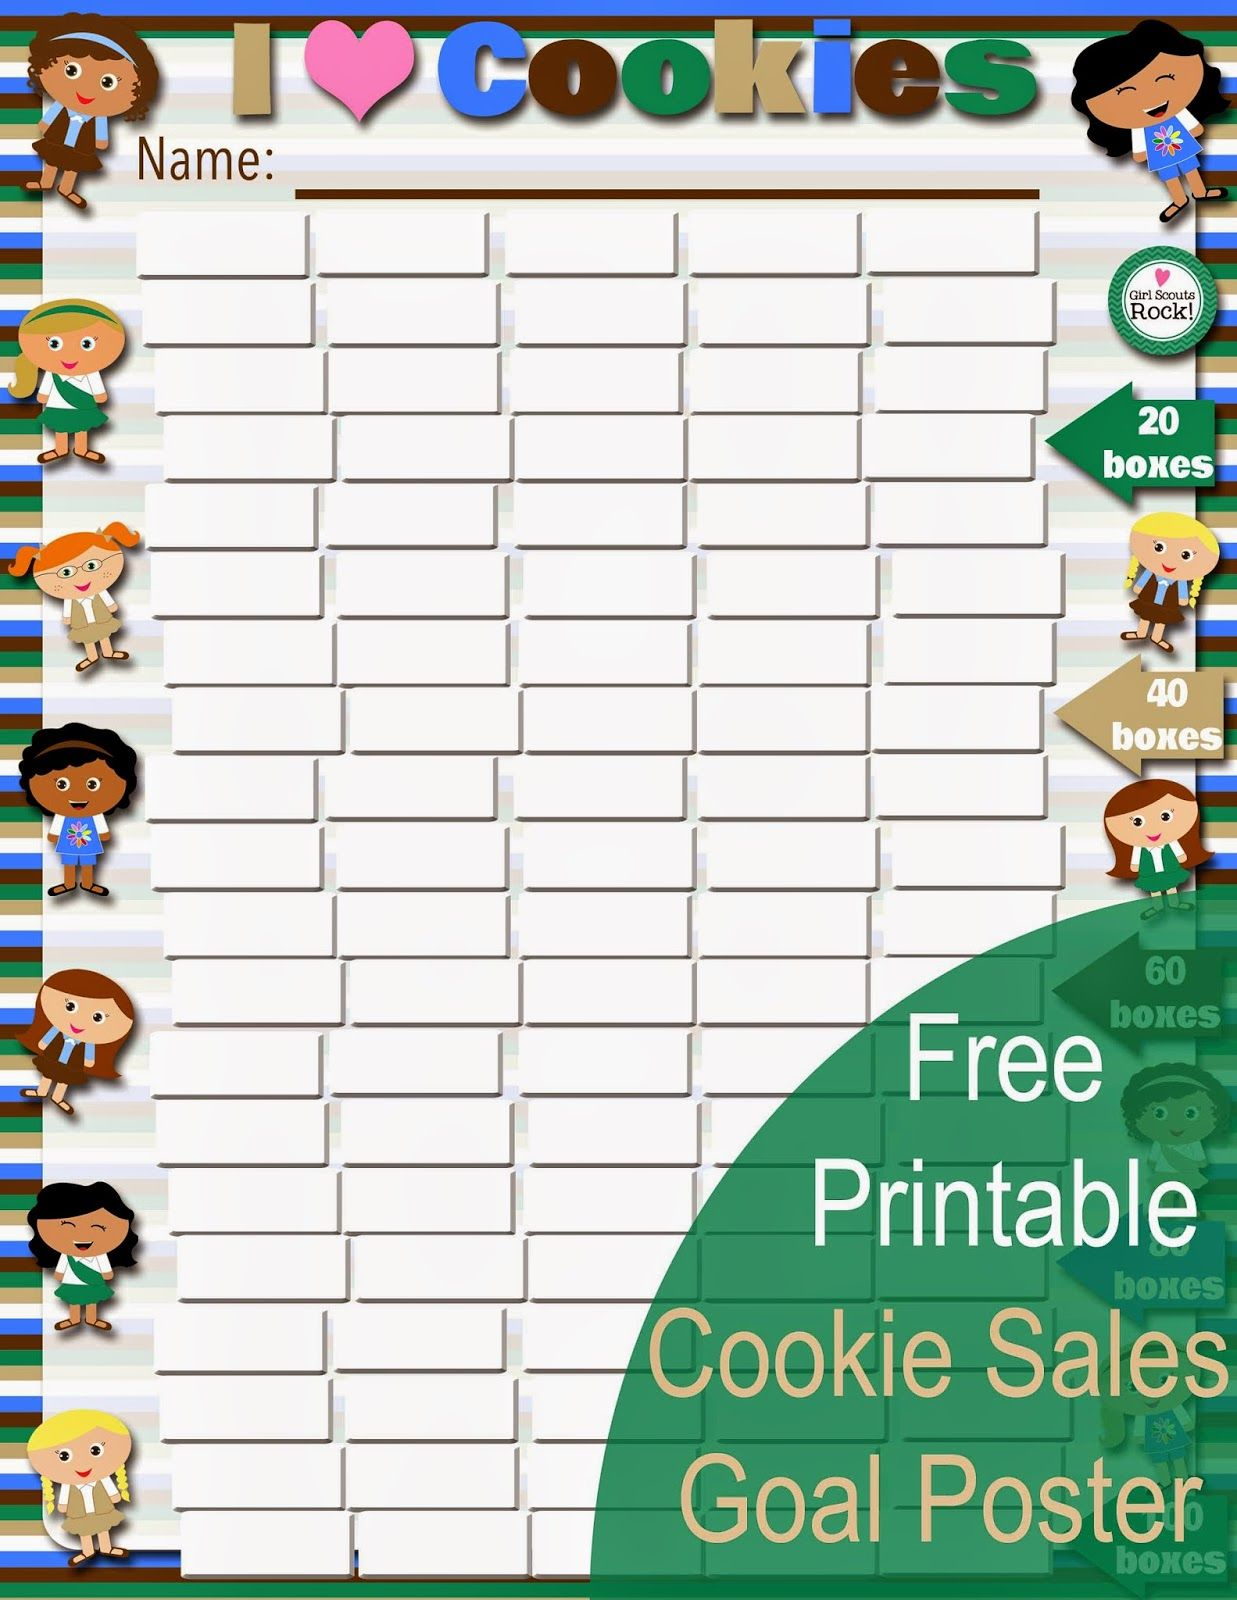 Worksheet For Girl Scouts